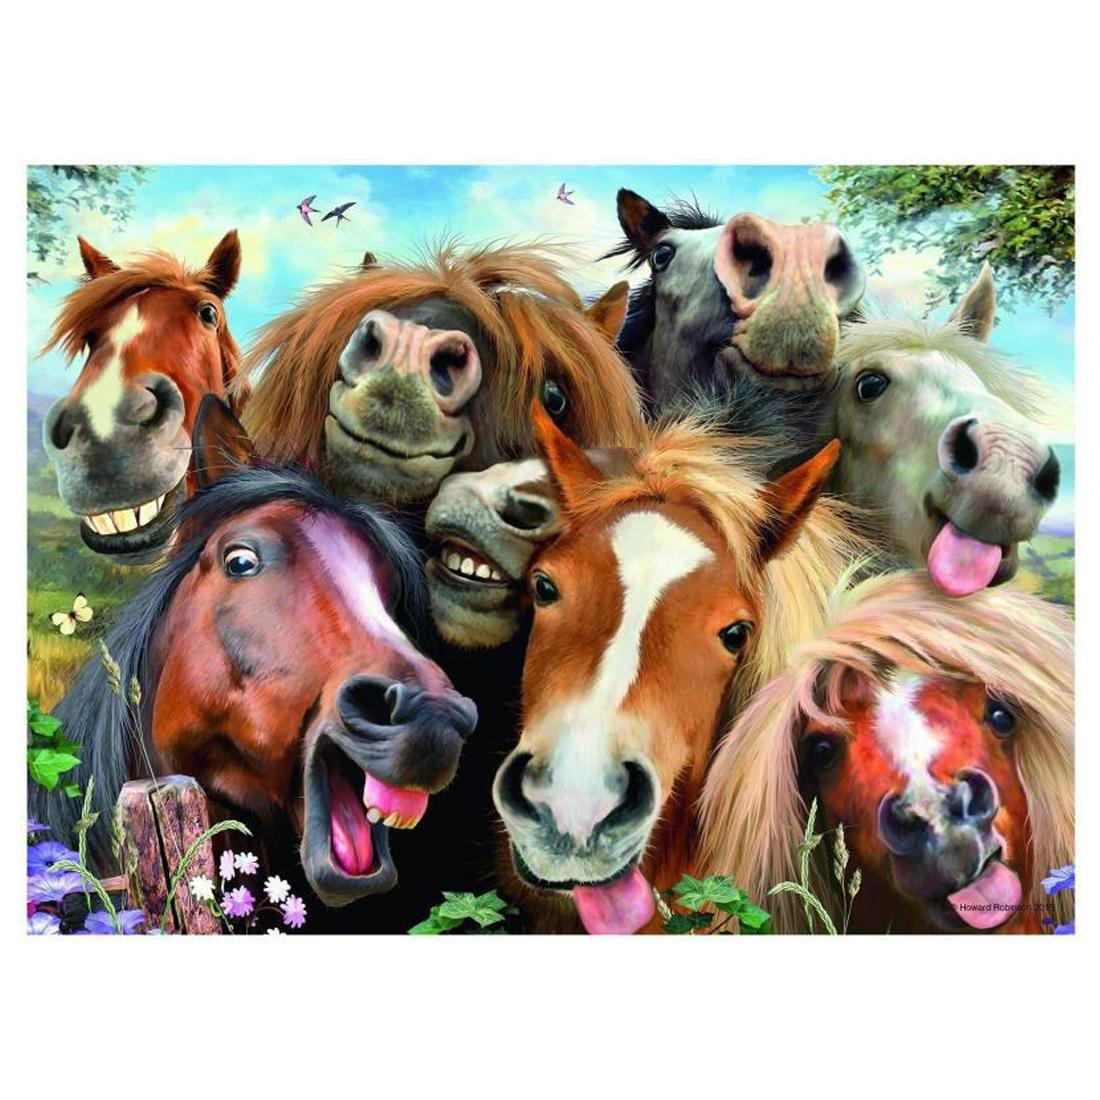 2020 Anti Stress Paint By Numbers Kit Funny Horses Unframd Canvas Digital Painting With Acrylic Paints Brushes Set For Adults Beginners Kids From Diypaintings 11 33 Dhgate Com